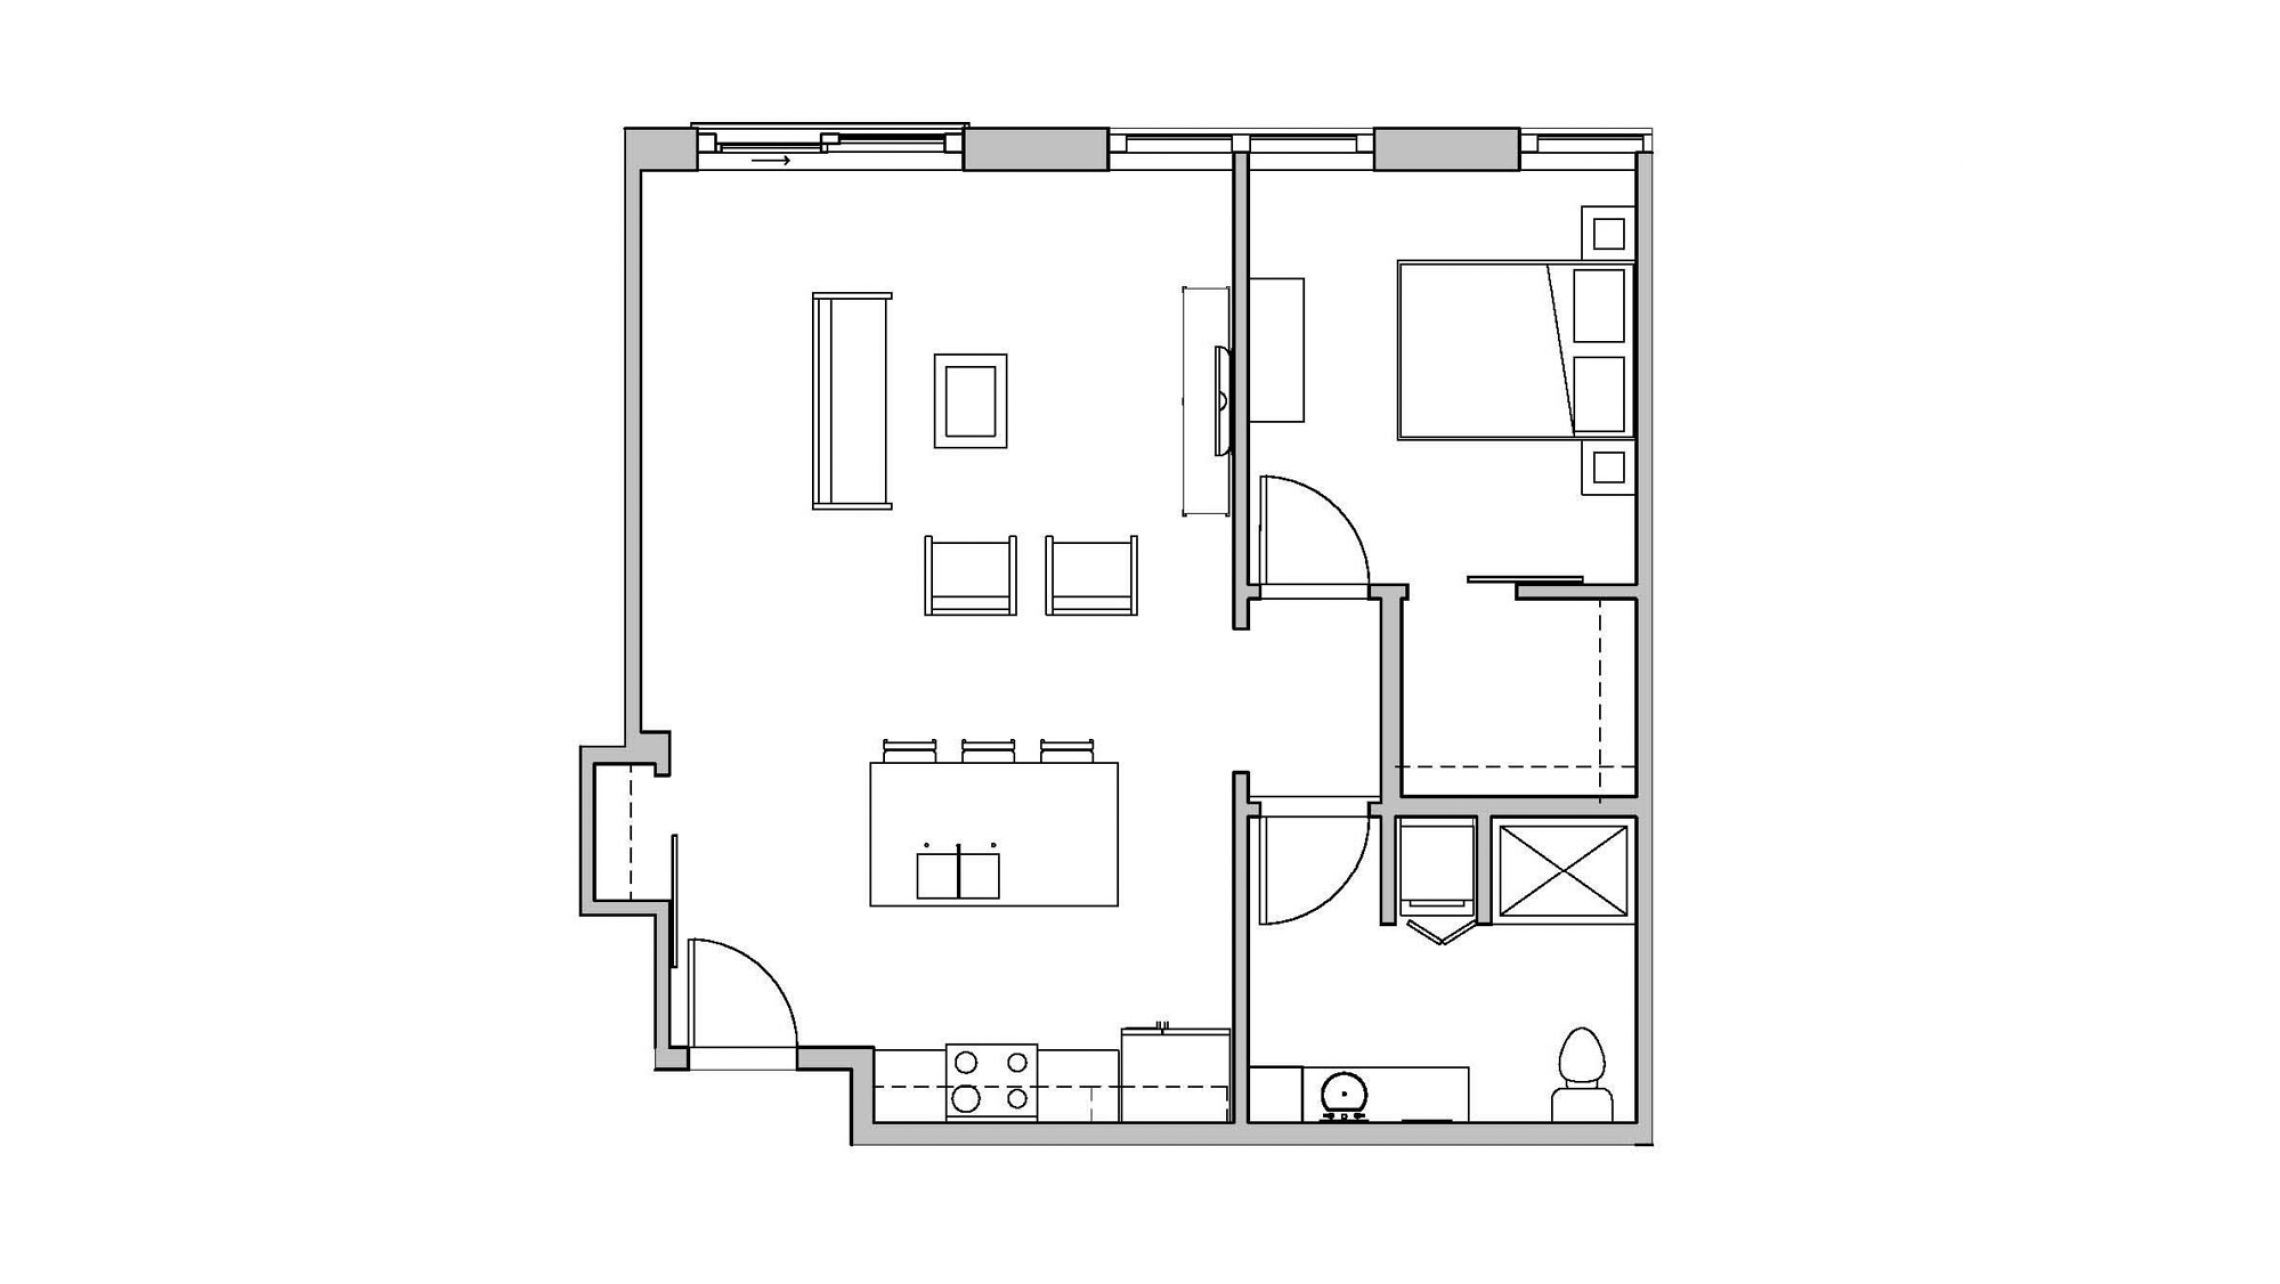 ULI Seven27 417 - One Bedroom, One Bathroom